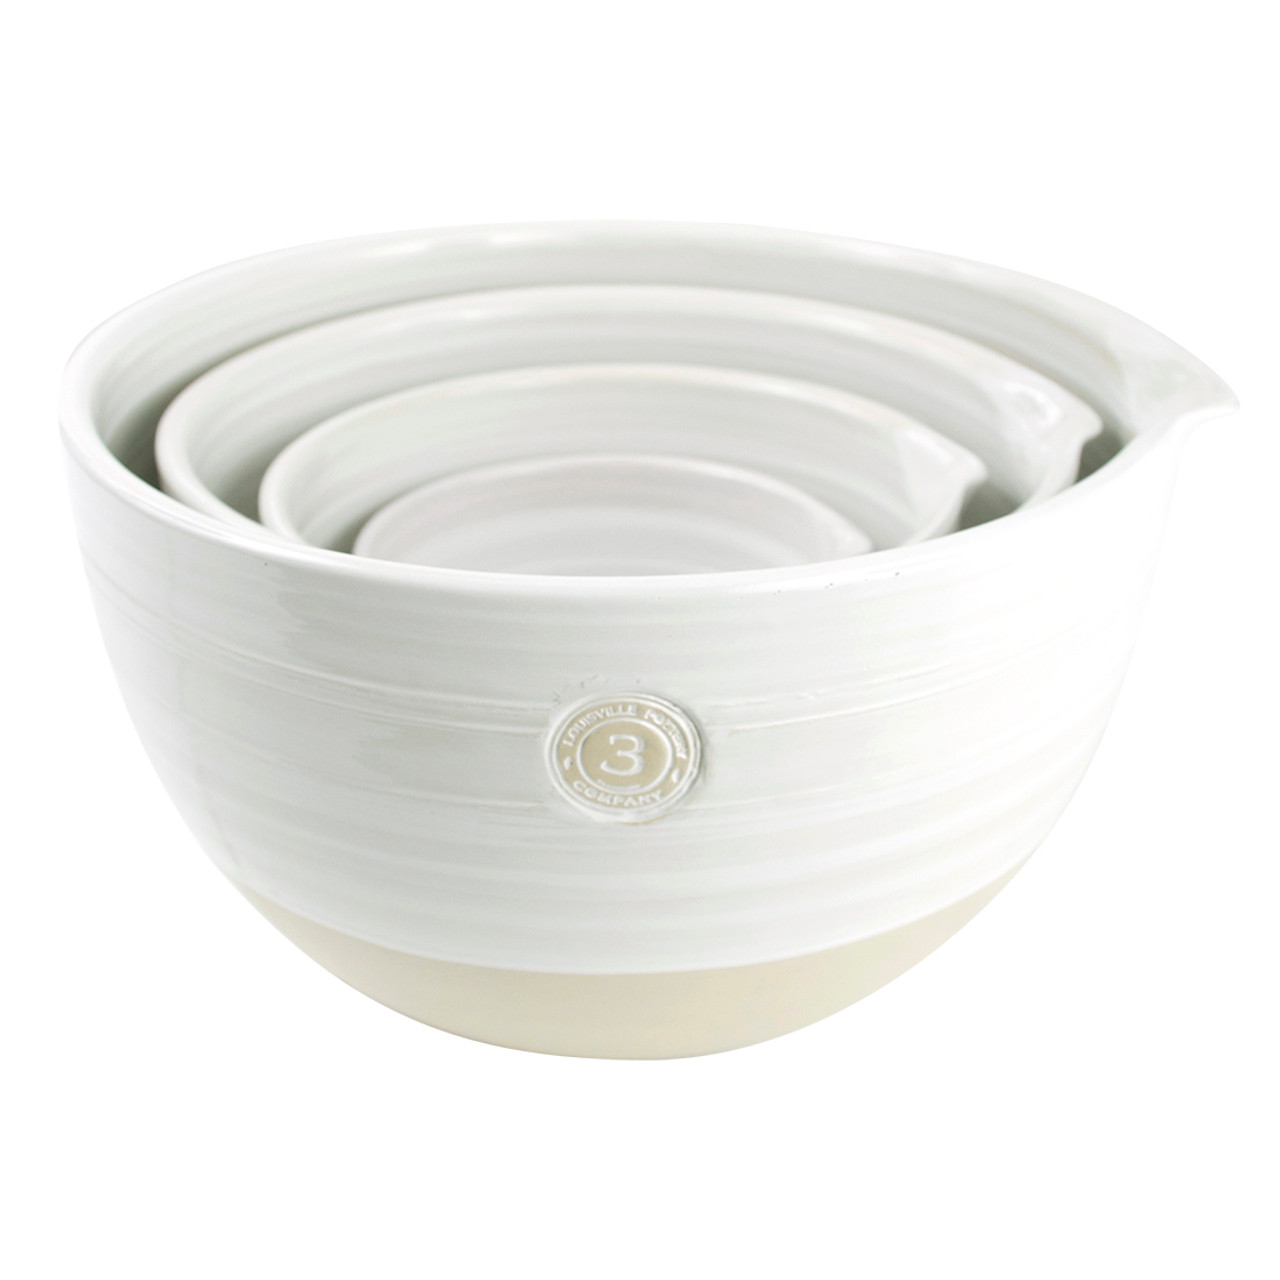 4 piece louisville pottery collection nested mixing bowl set in white stoneware co. Black Bedroom Furniture Sets. Home Design Ideas